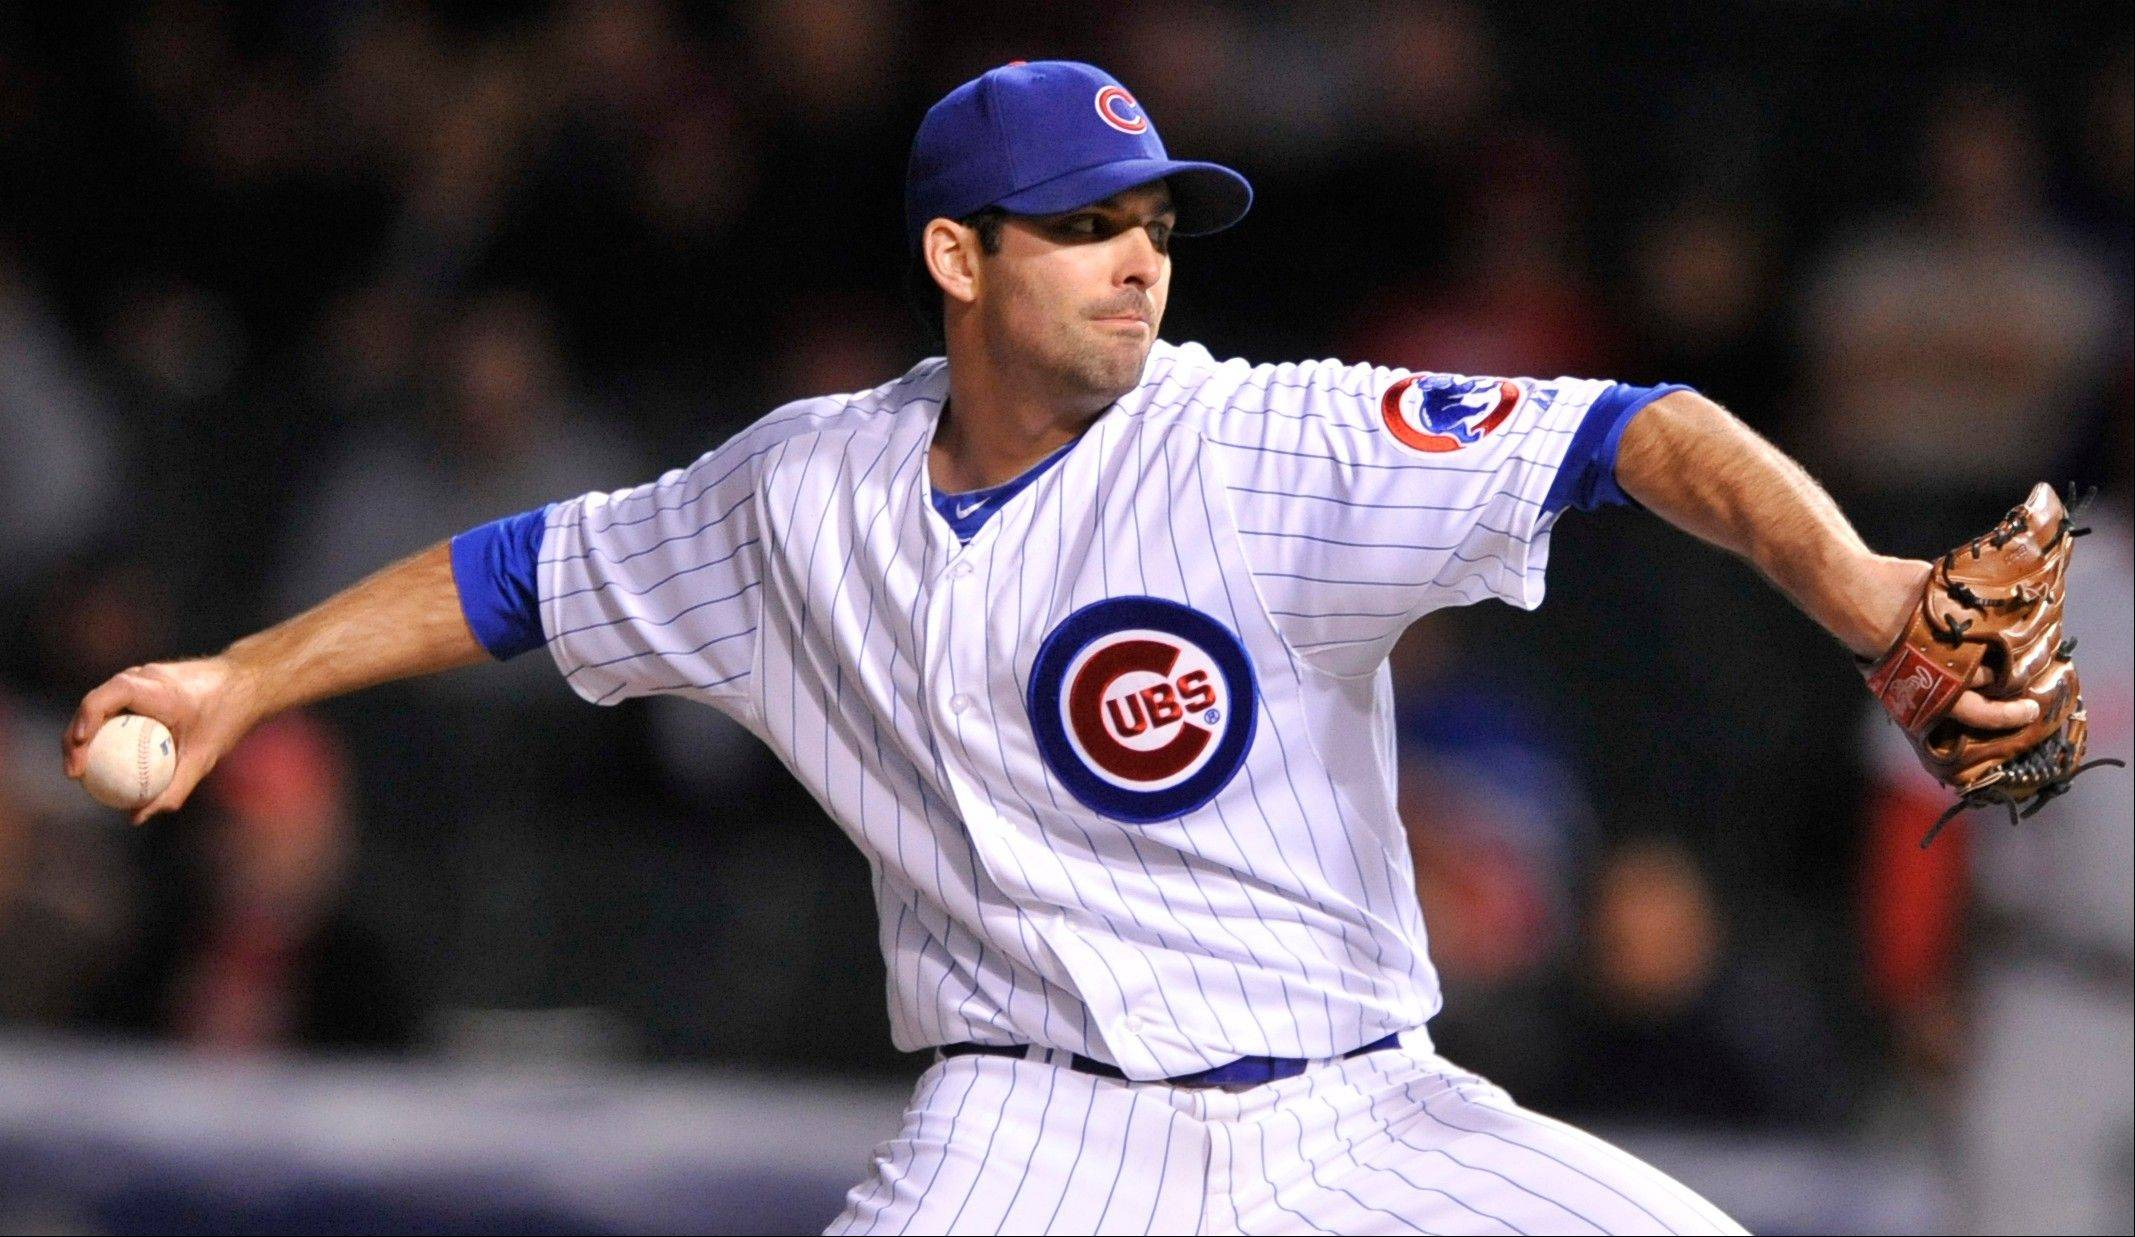 Cubs starter Justin Germano delivers a pitch in the first inning during a baseball game against the Cincinnati Reds in Chicago, Tuesday, Sept. 18, 2012.